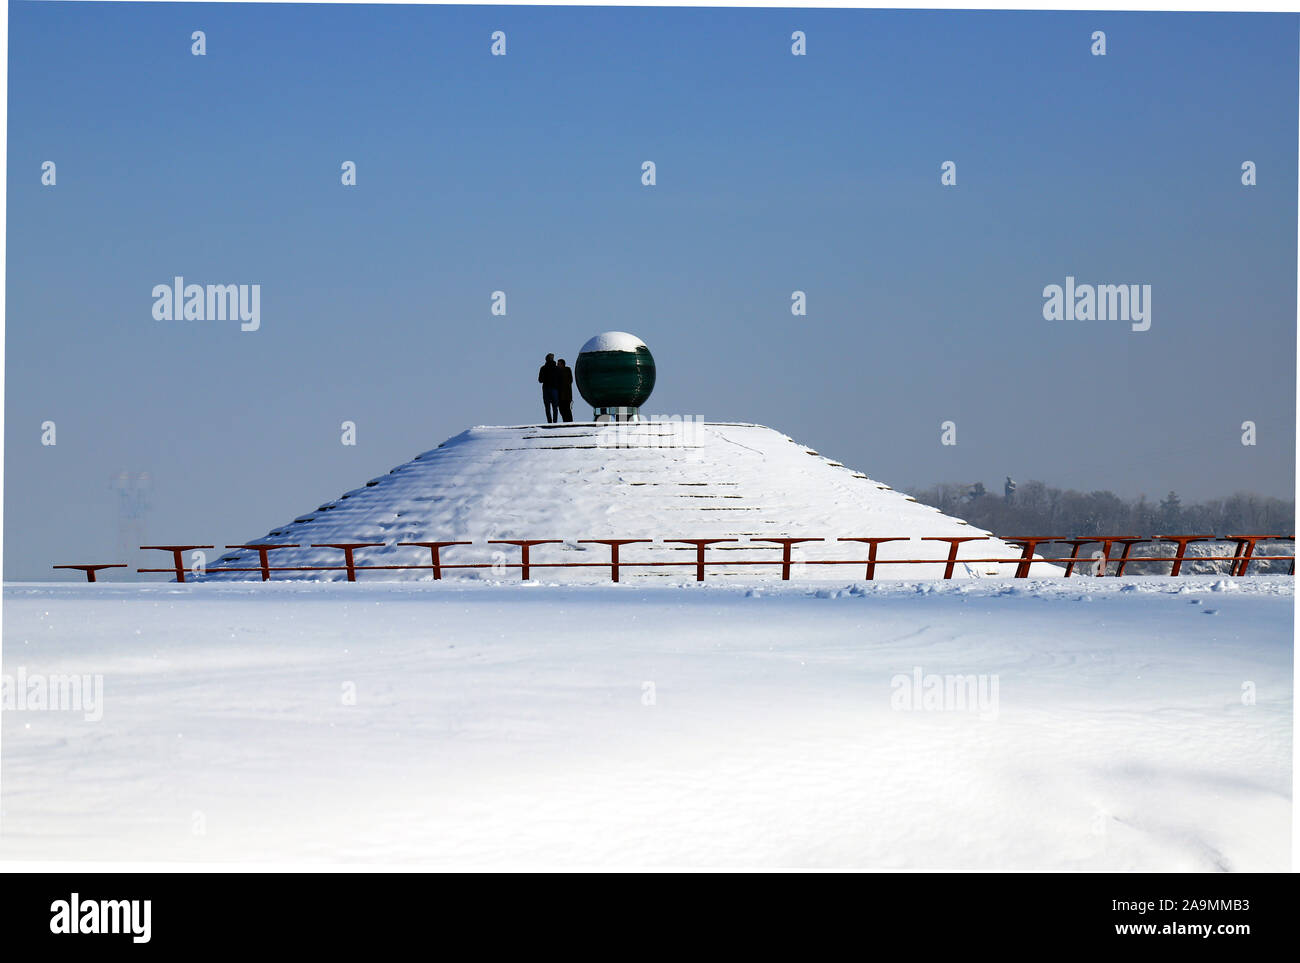 Snowy winter landscape, streets and a pyramid covered in snow. Cityscape  in the Dnipro city, Dnepropetrovsk, Ukraine, December, January, February Stock Photo